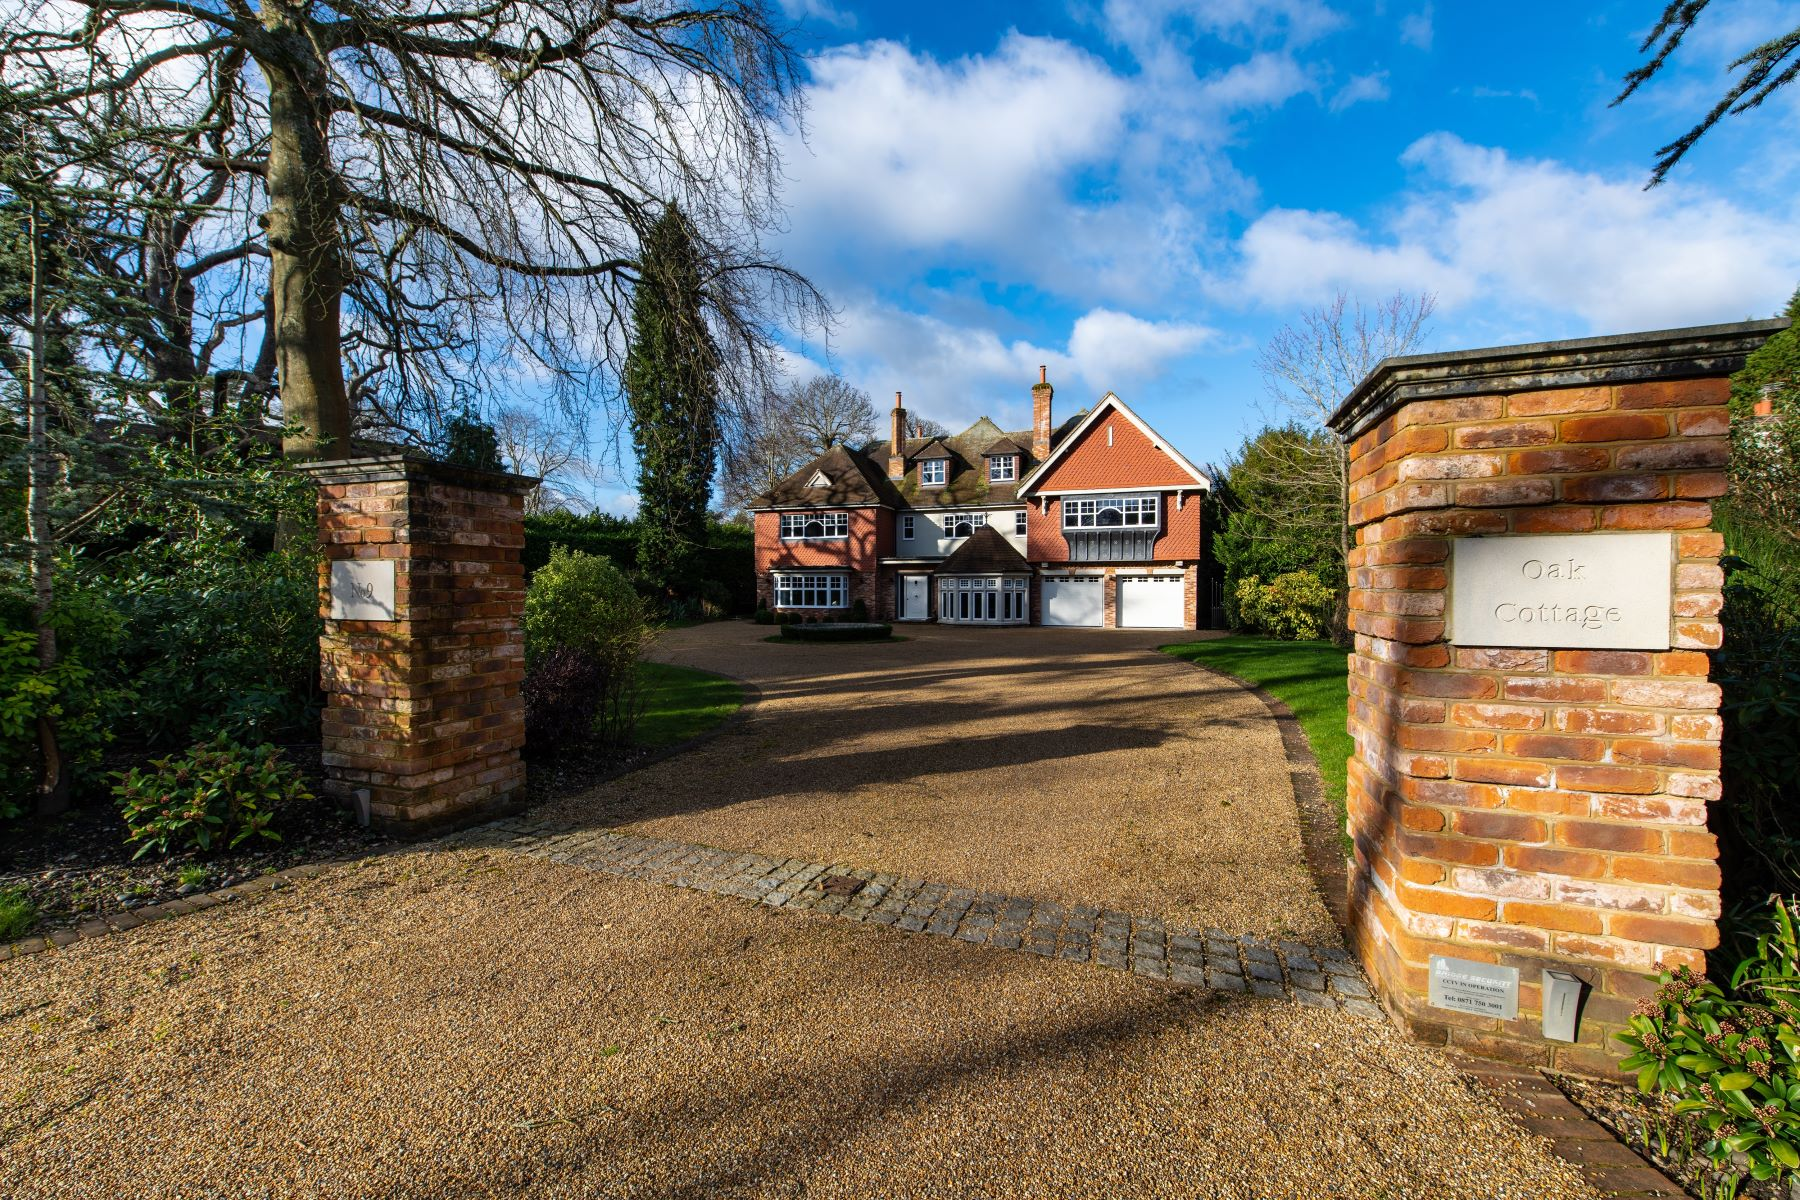 Single Family Homes for Sale at 9 Forest Ridge Bromley, England BR2 6EG United Kingdom